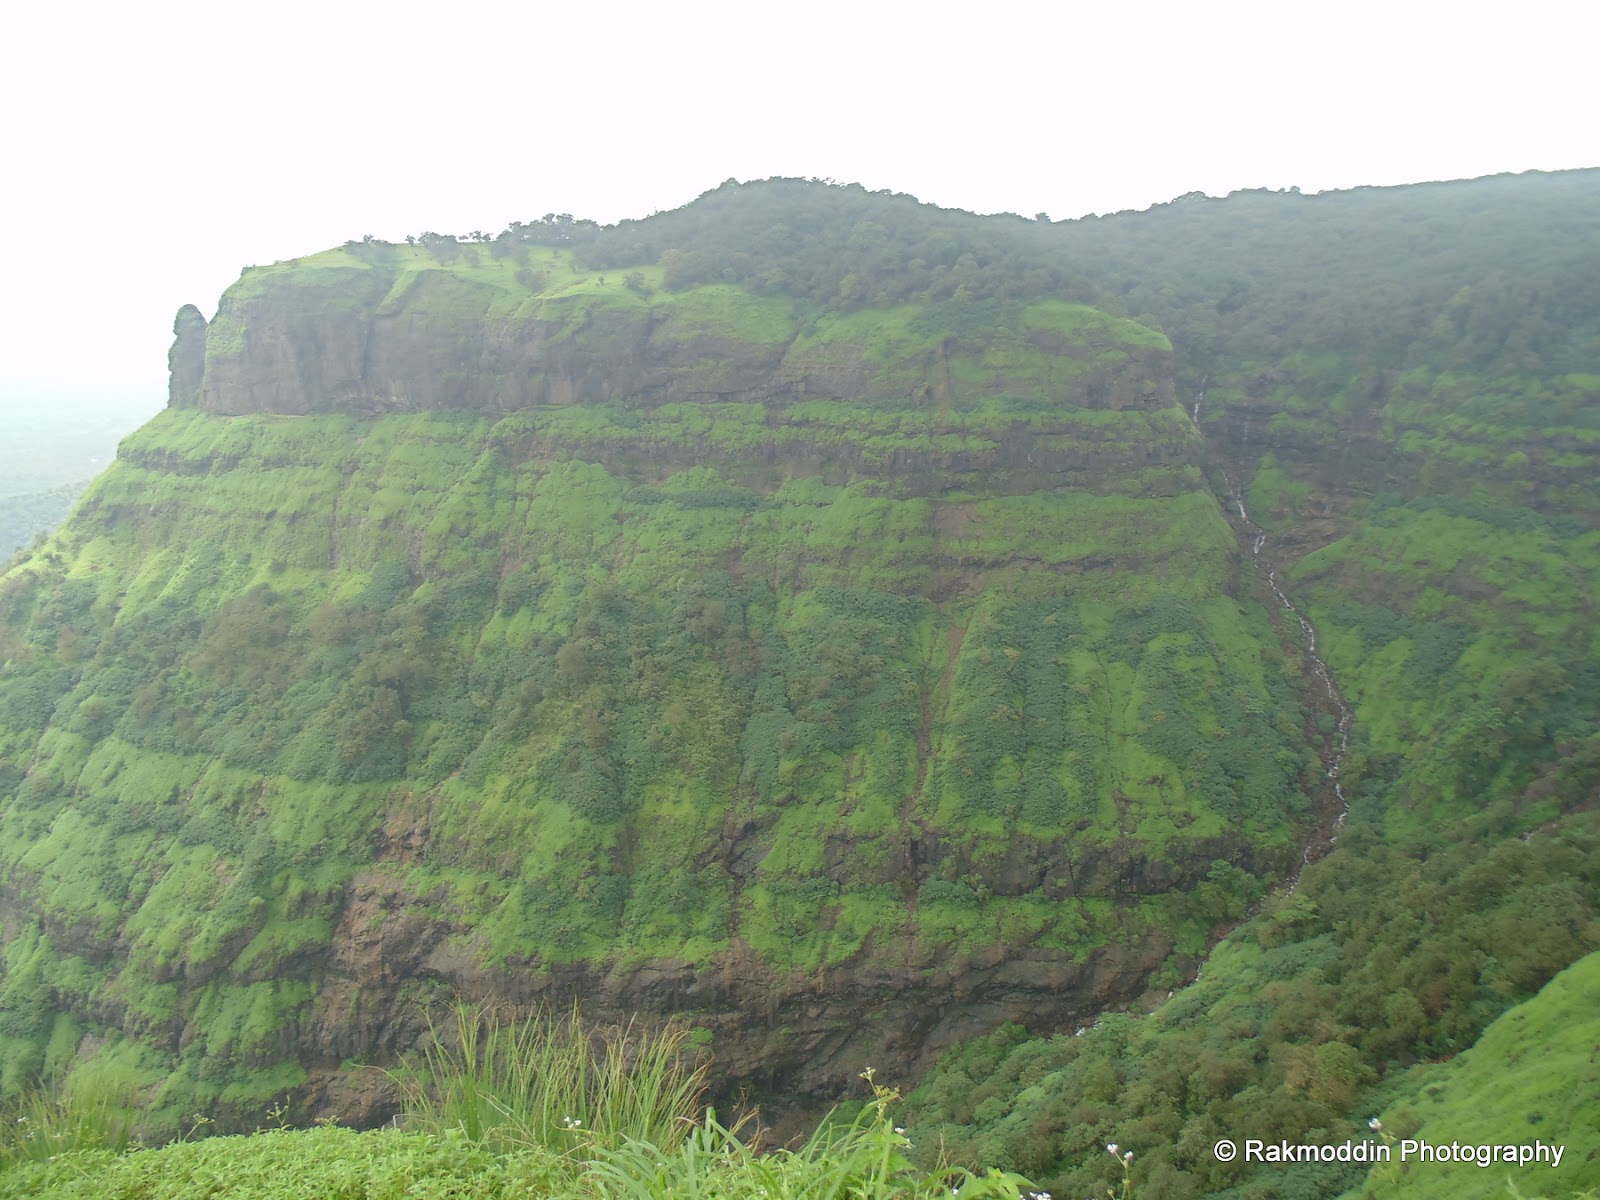 Cecil Point - Picturesque Valley View of Matheran Hill Station